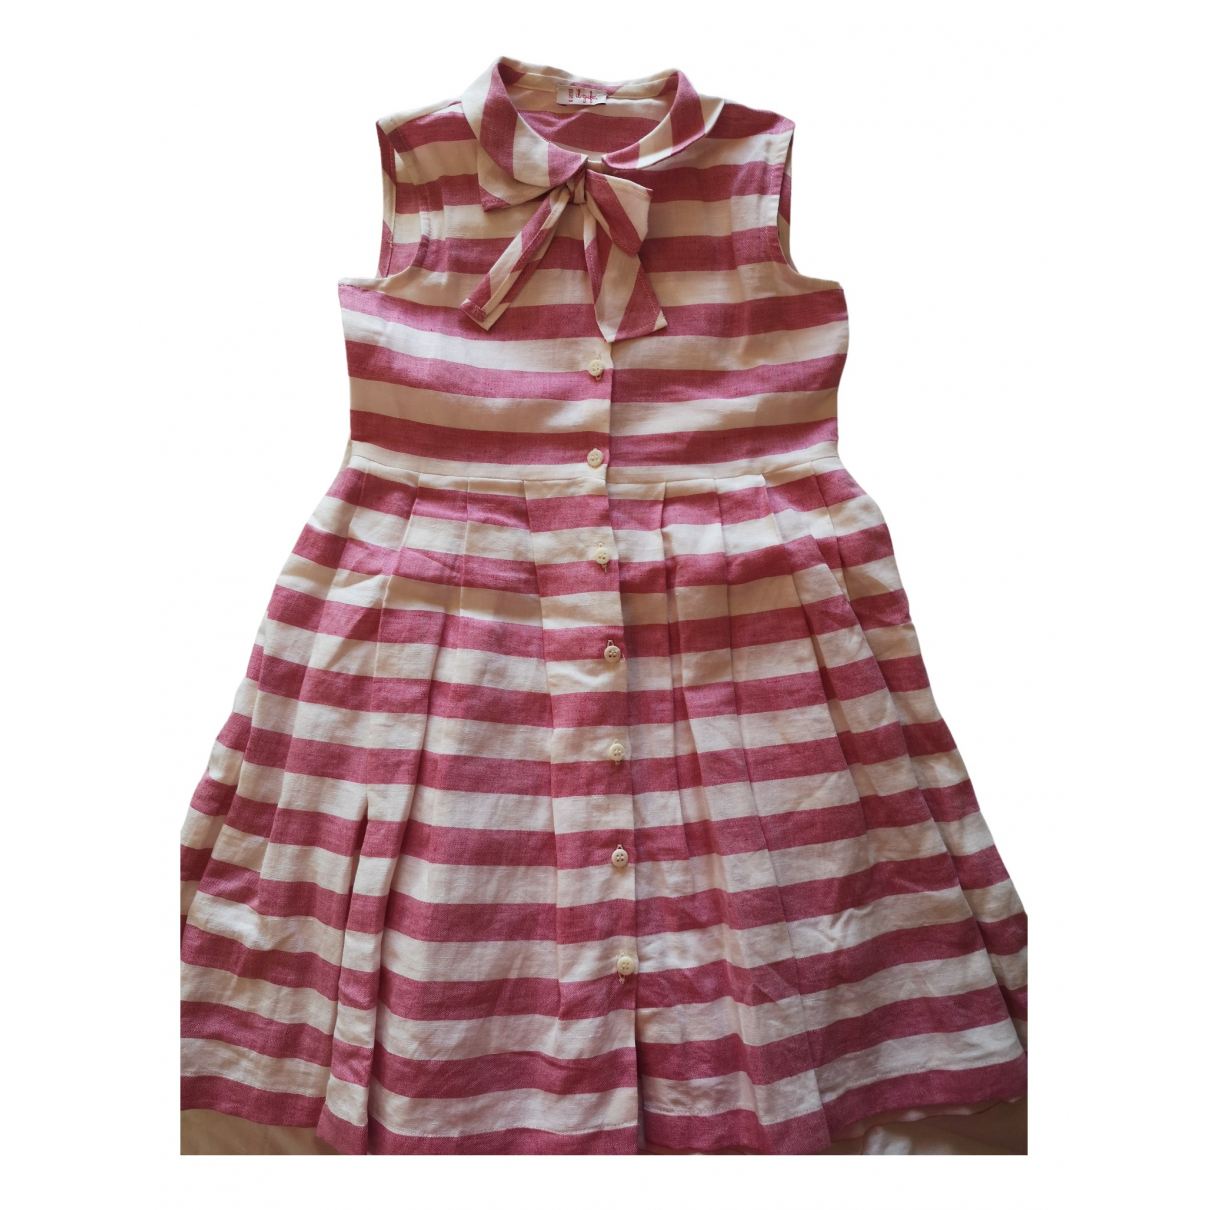 Il Gufo N Cotton dress for Kids 6 years - up to 114cm FR